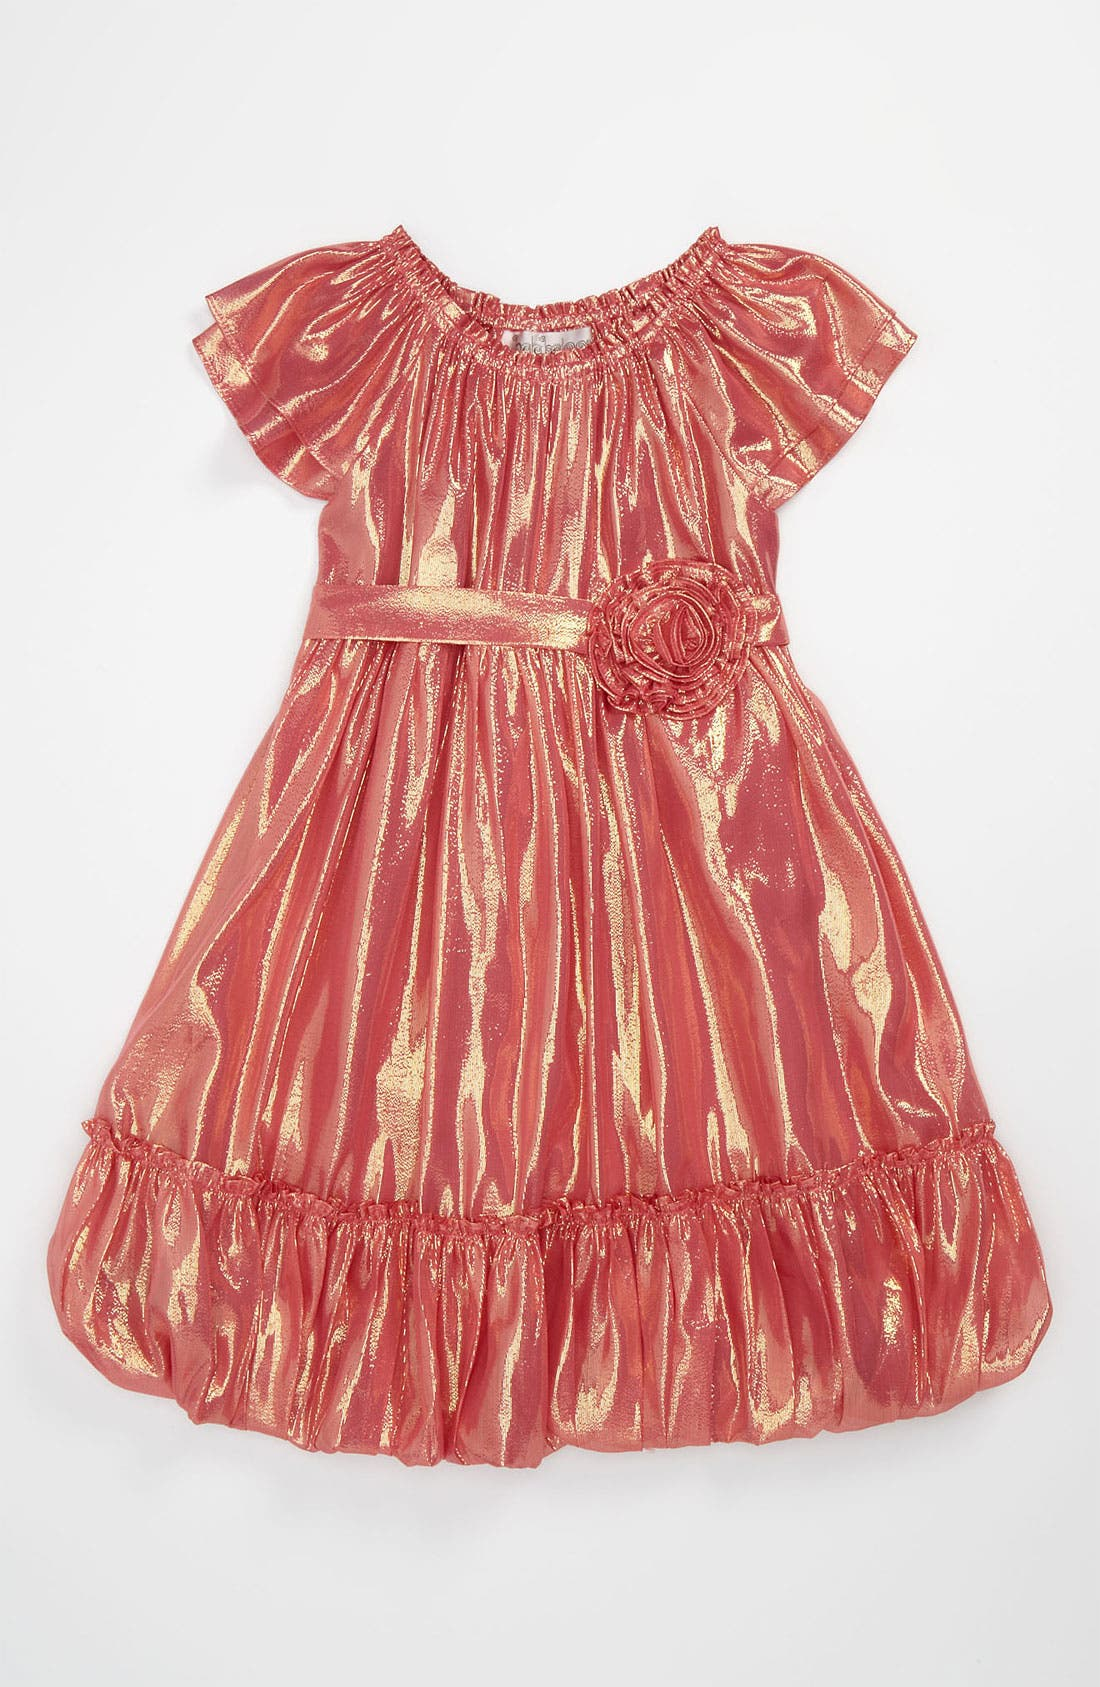 Alternate Image 1 Selected - Halabaloo Metallic Dress (Little Girls)